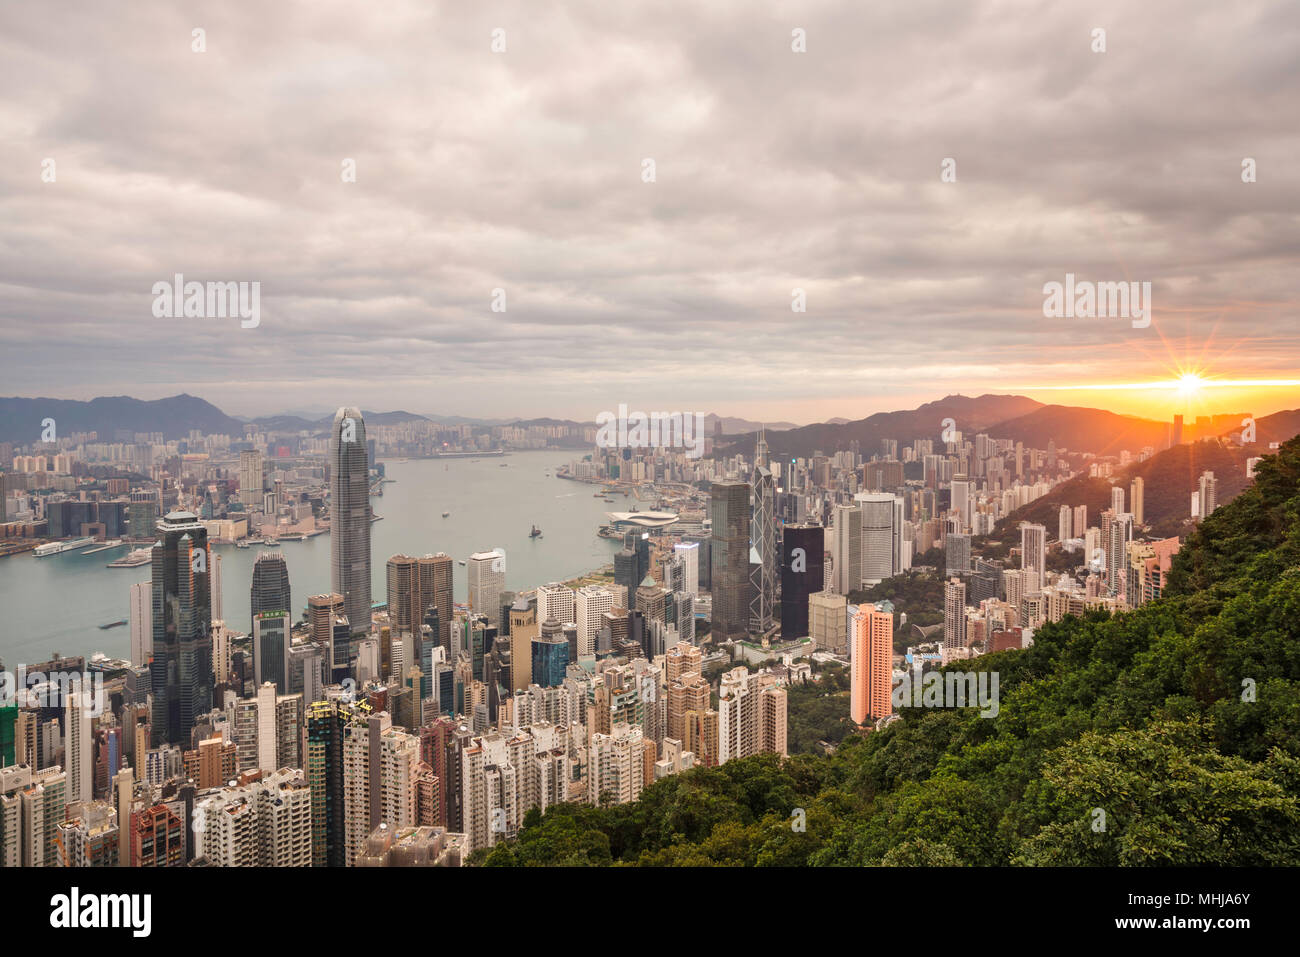 A view of the Hong Kong skyline looking east at twilight - Stock Image